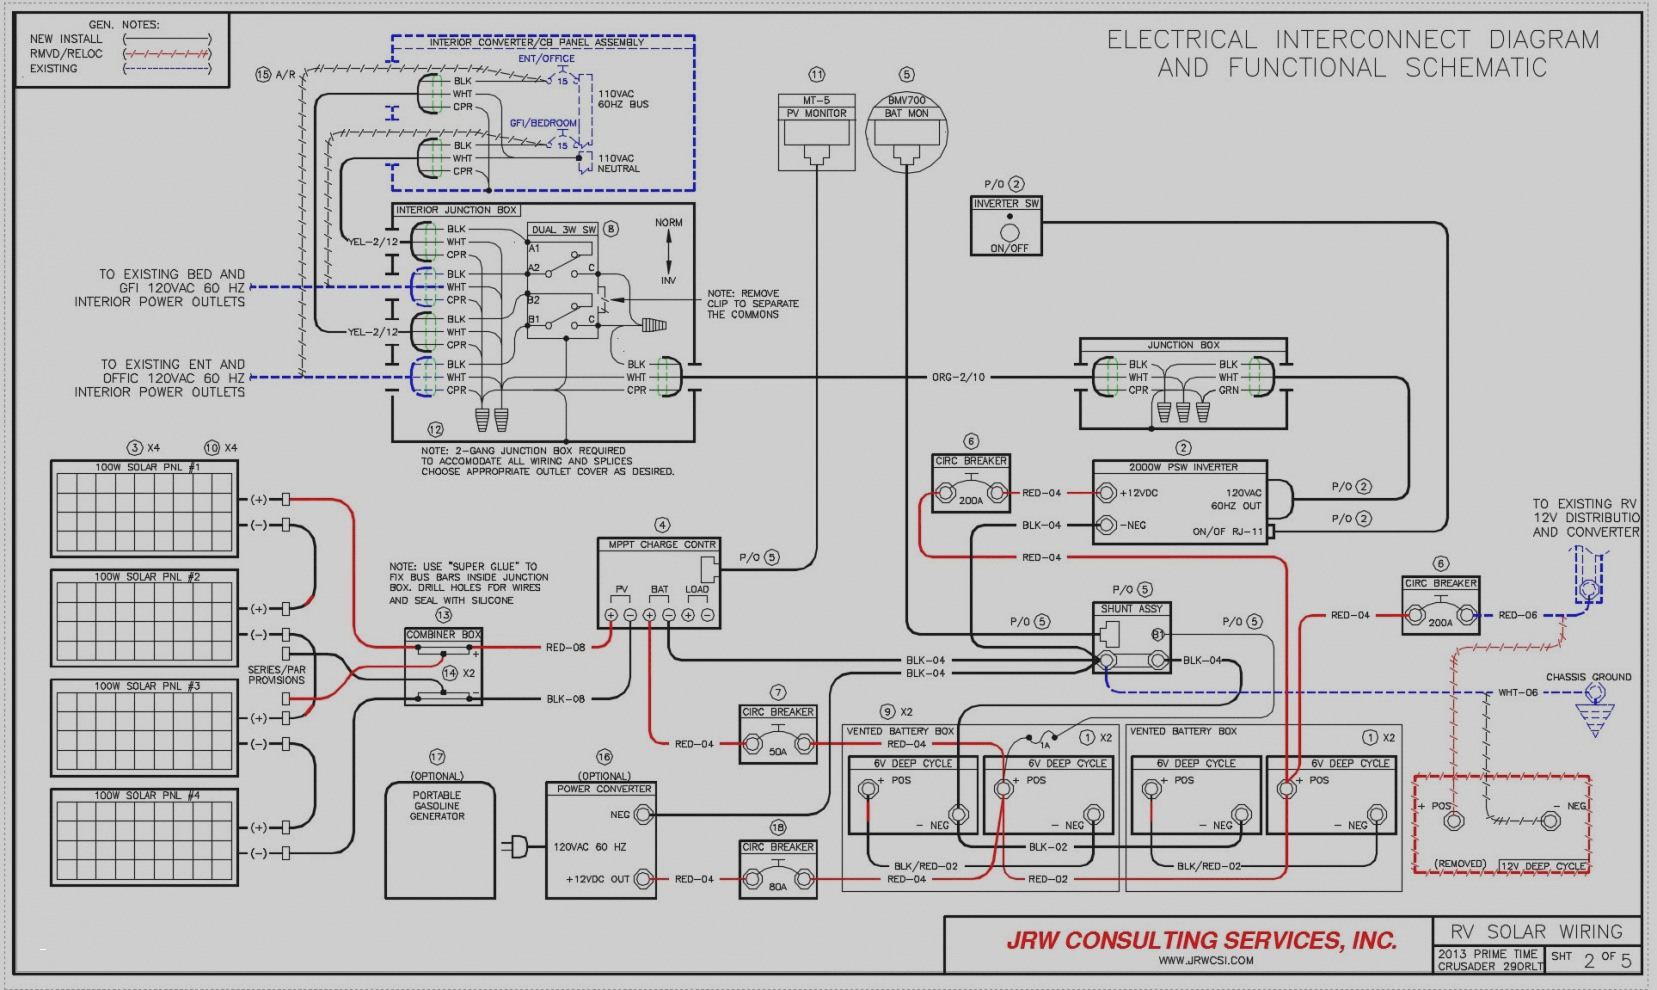 rv transfer switch wiring diagram 3 phase electric meter gallery